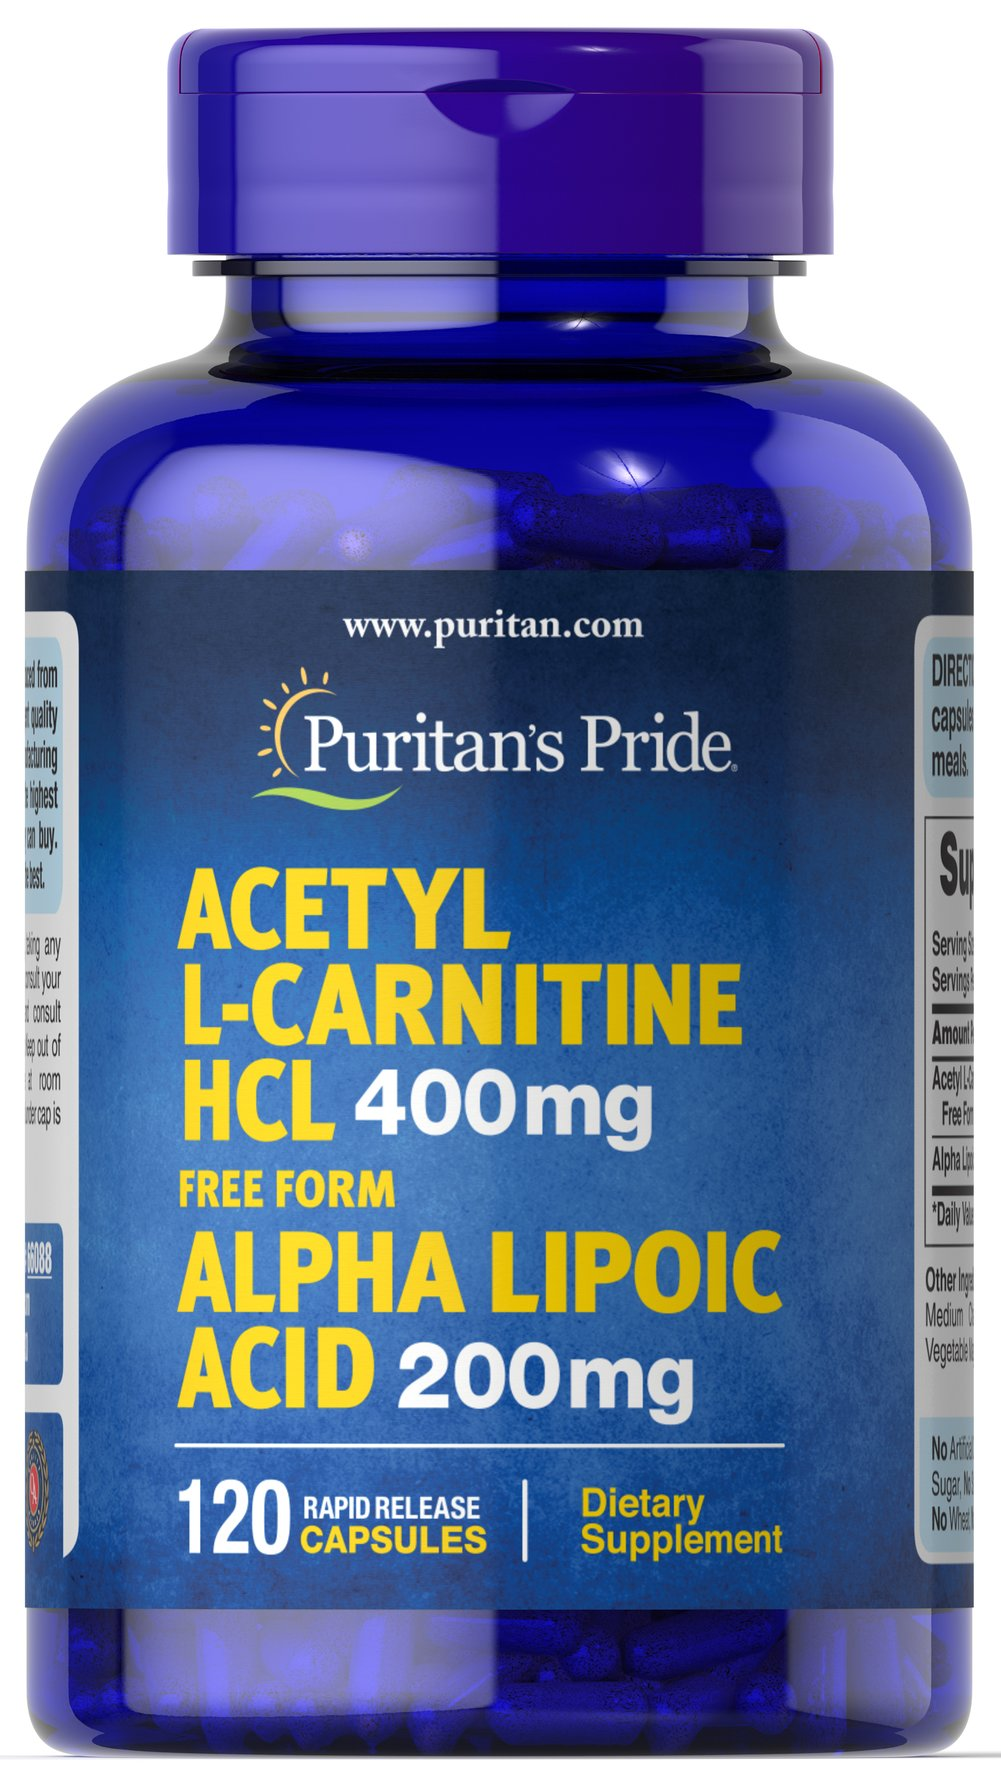 Acetyl L-Carnitine 400 mg with Alpha Lipoic Acid 200 mg <p>Supports Antioxidant Health**</p><p>Supports Metabolic Functioning**</p><p>Use as part of your healthy aging program**</p><p>As we age, our cells are less able to counteract the cell-damaging effects of free radicals and oxidative stress. Oxidative stress can lead to the premature aging of cells.</p> 120 Capsules 400 mg/200 mg $63.99